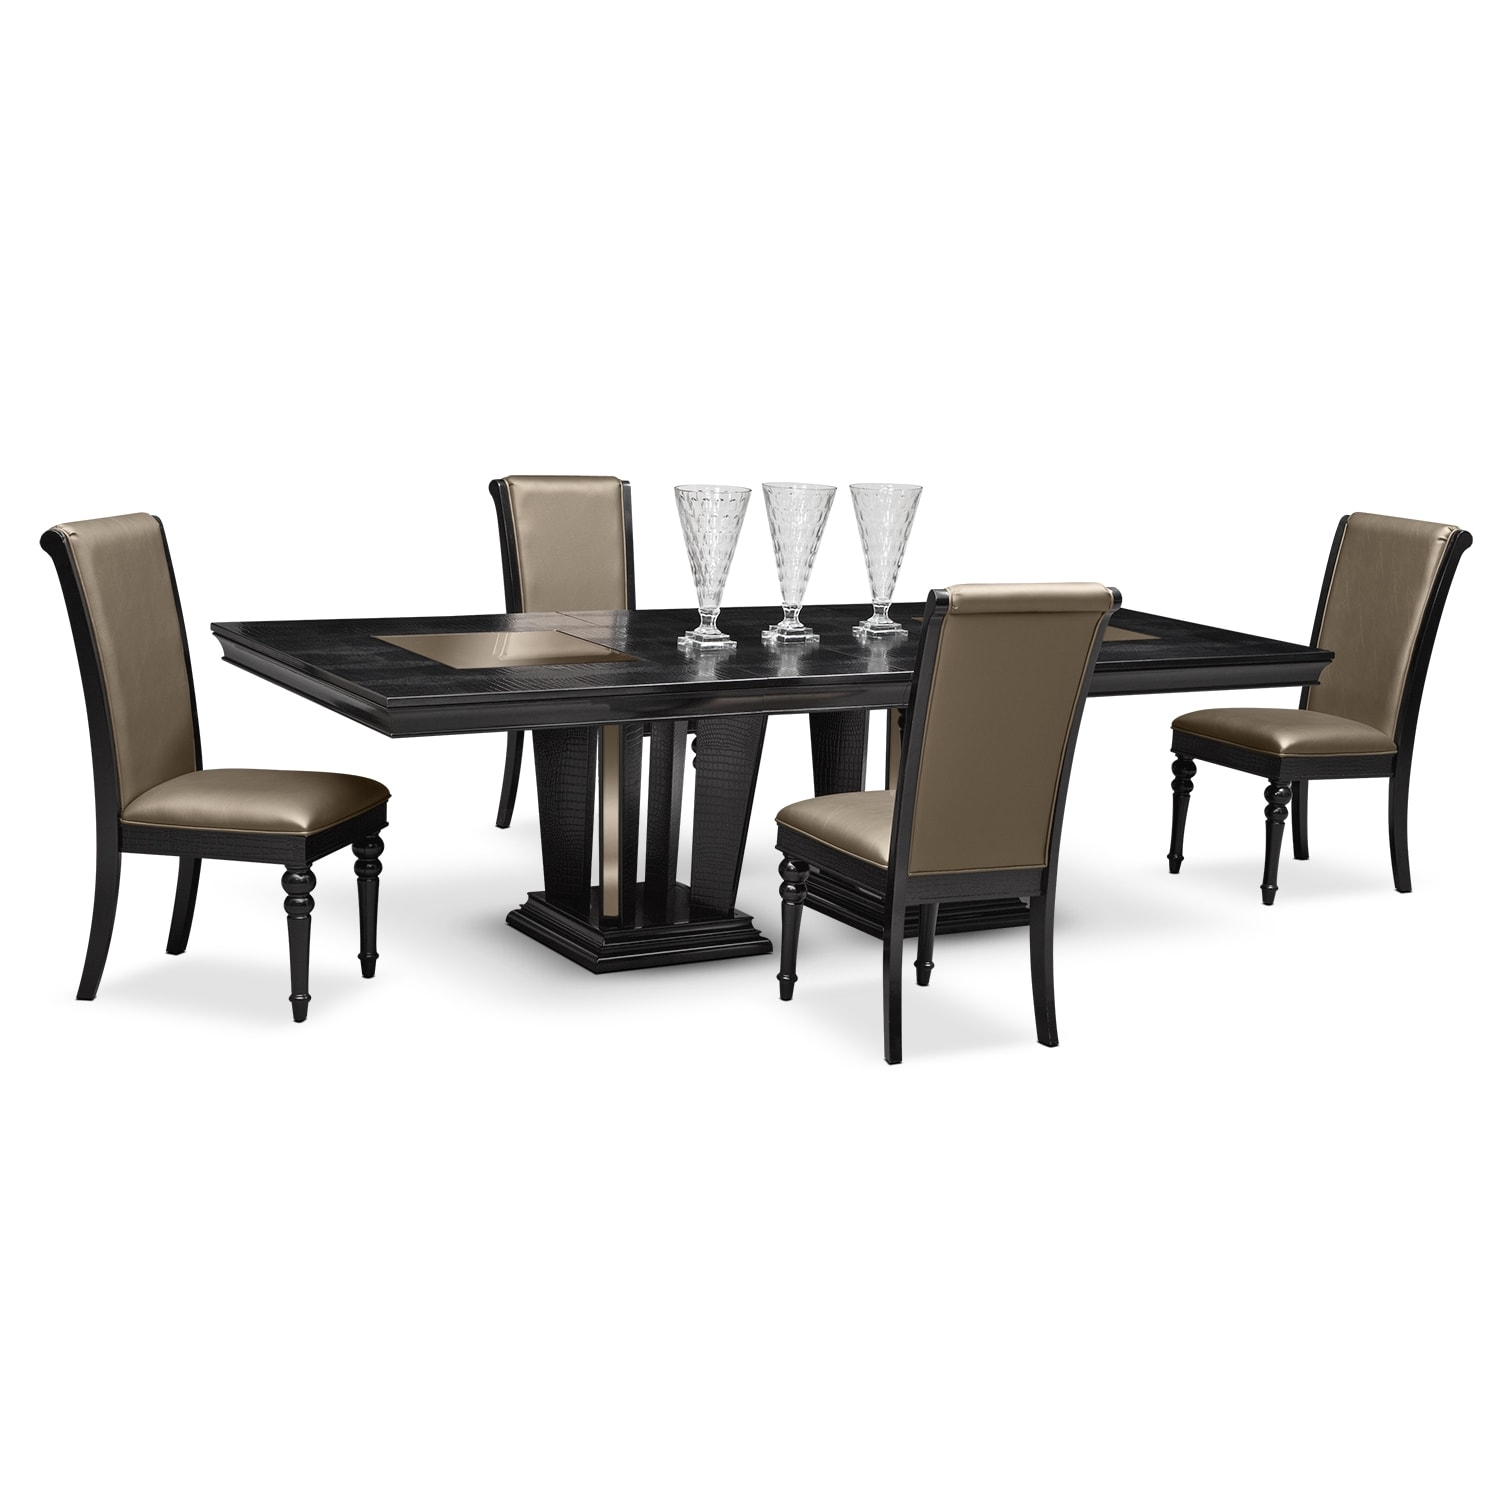 Dining Room Furniture - Paradiso 5 Pc. Dinette